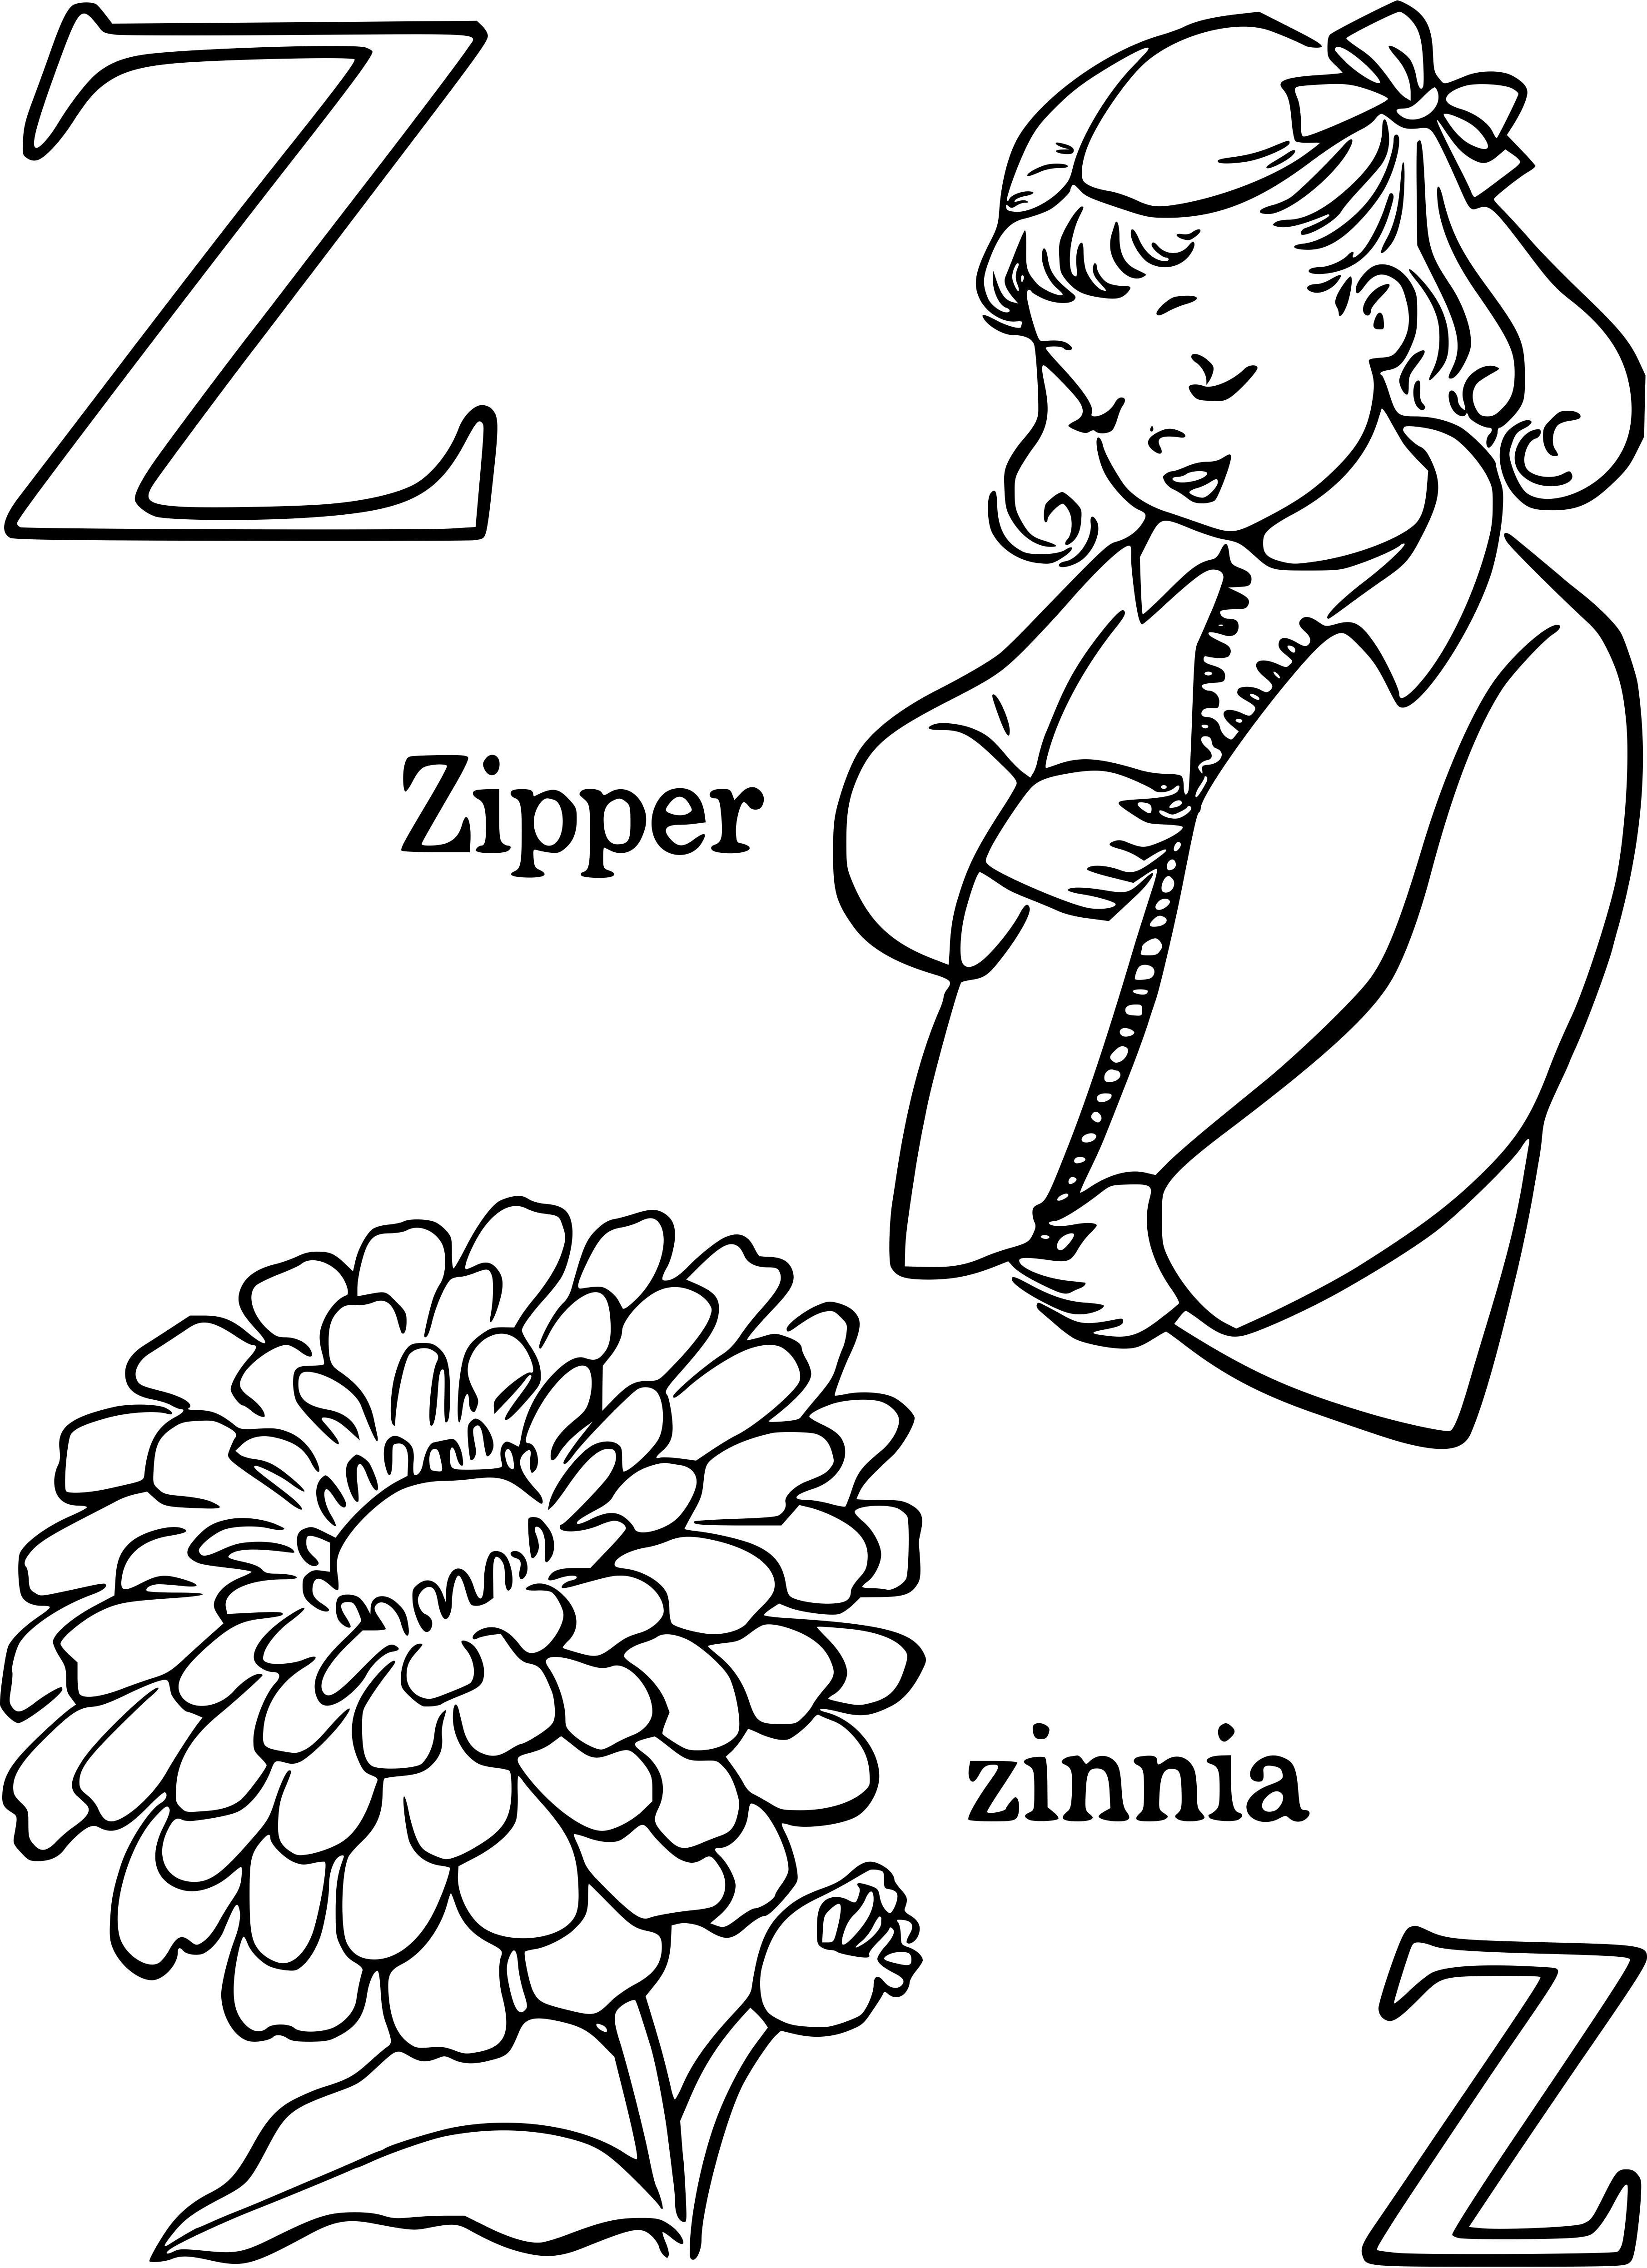 Zinnia Coloring Pages Best Coloring Pages For Kids Printable Flower Coloring Pages Fairy Coloring Pages Coloring Pages